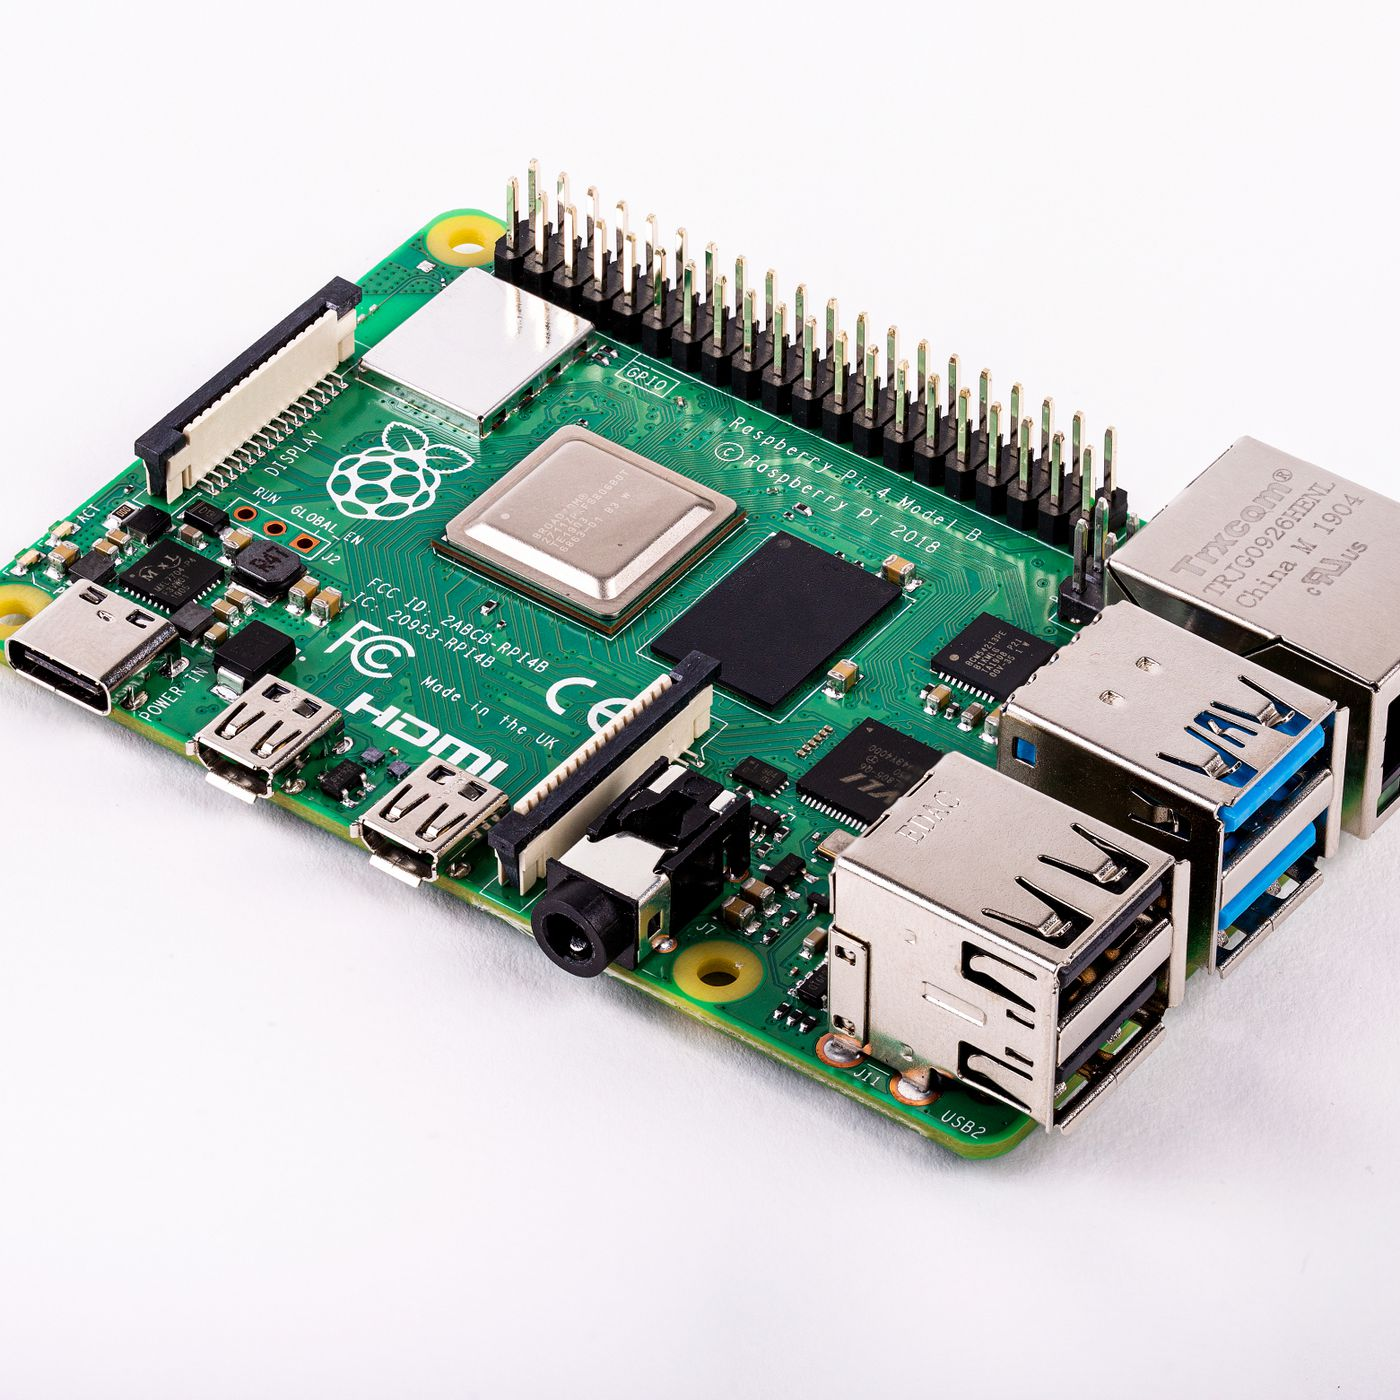 $35 Raspberry Pi 4 announced with 4K support and up to 4GB of RAM